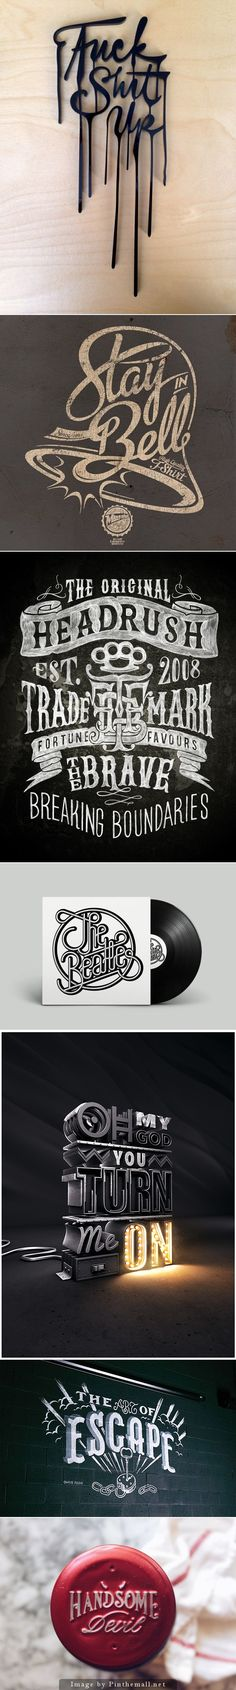 creative typography #lettering #script #typography #type #brush #handlettering #visual #design